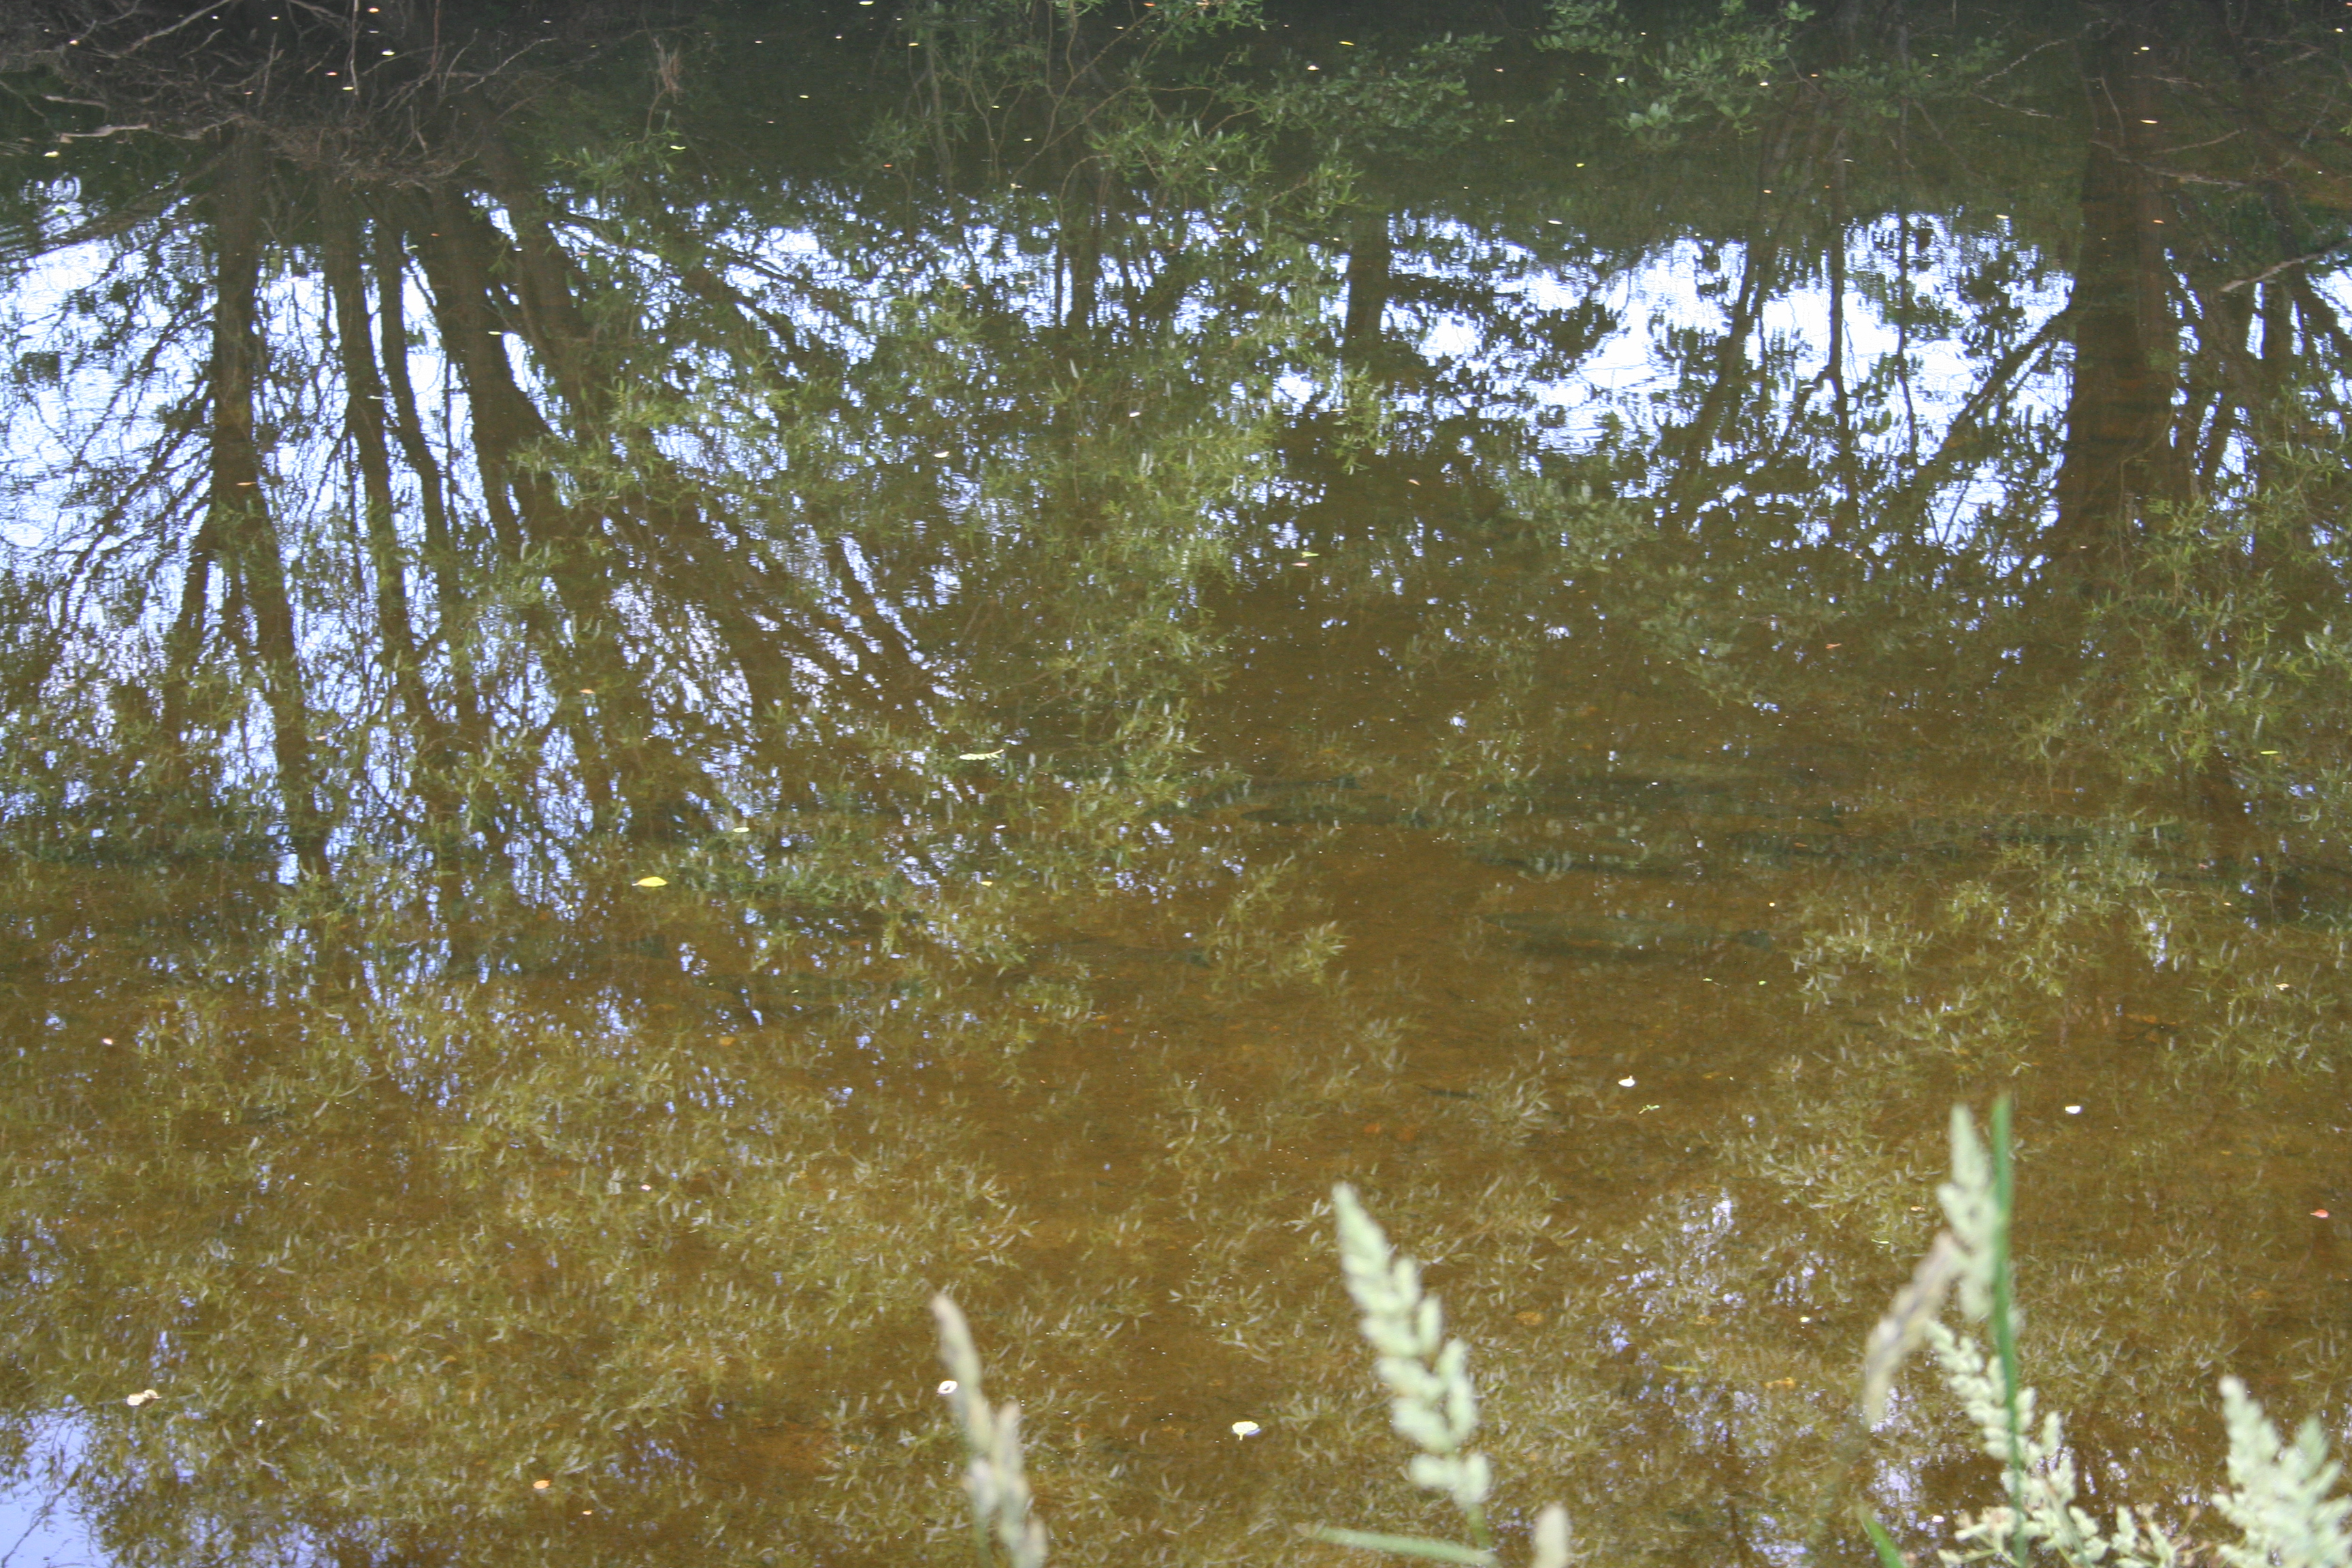 Seatrout shoal in Boat Pool